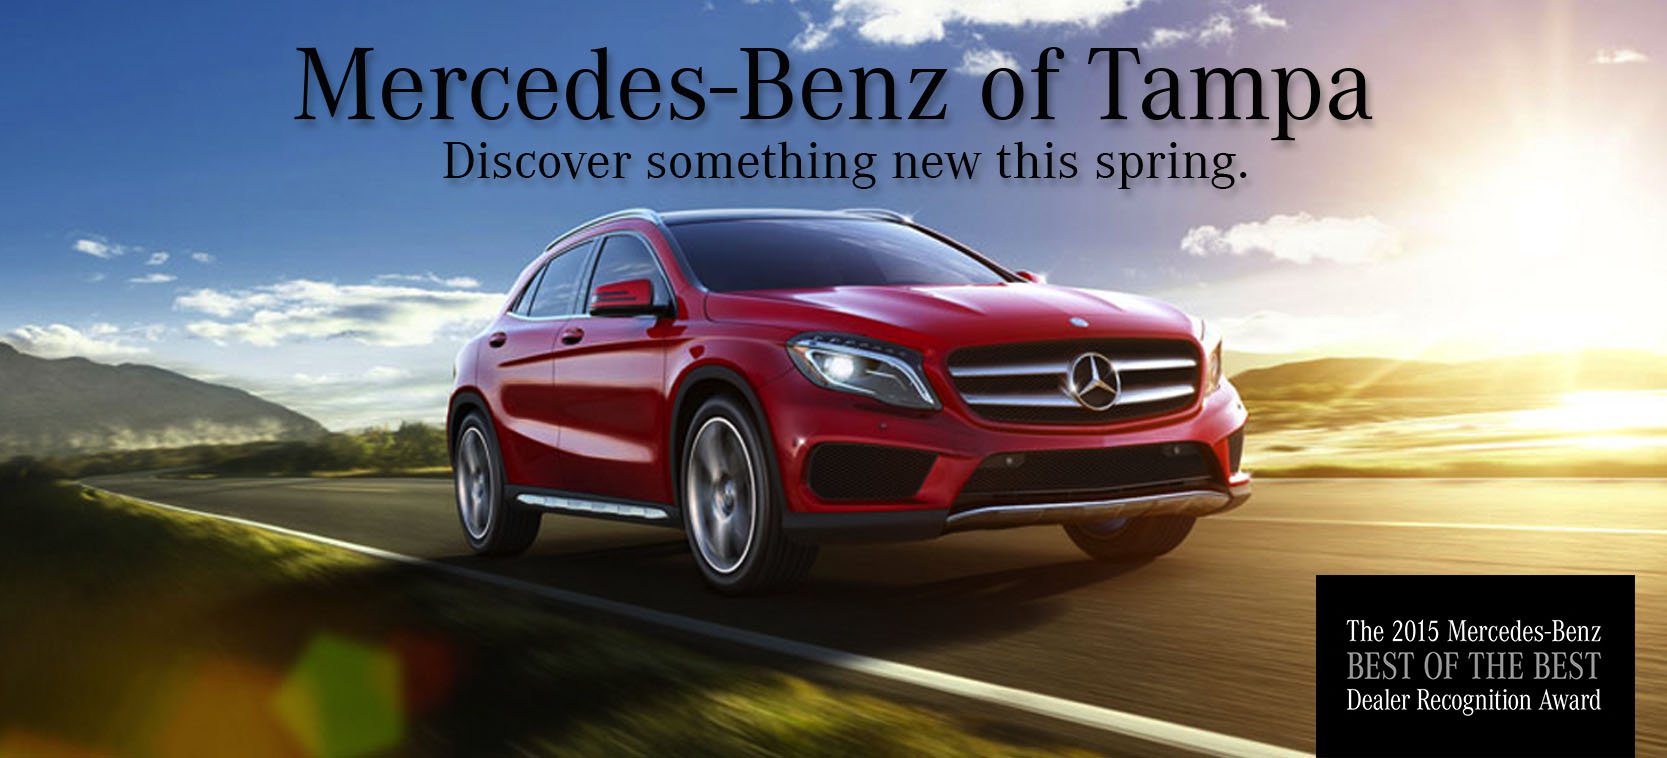 Mercedes Benz of Tampa New Vehicle Sale